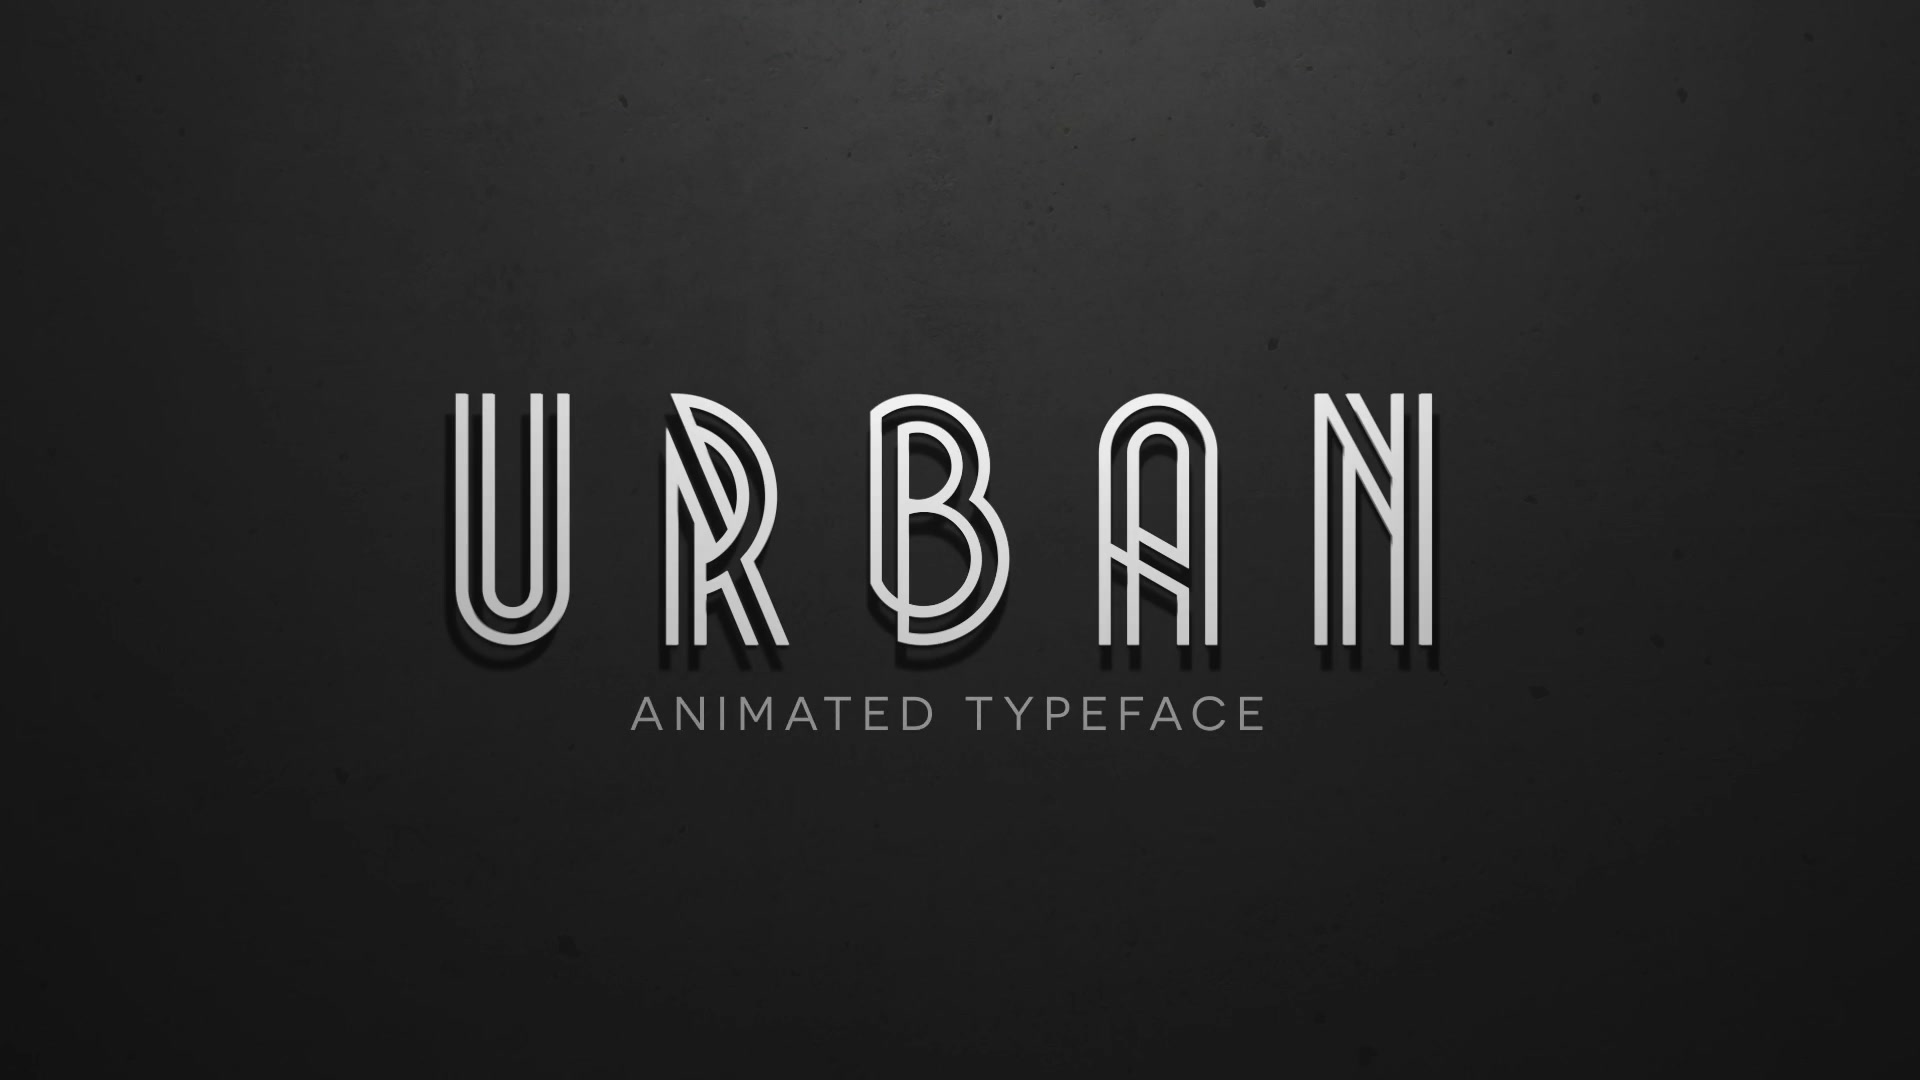 Urban Plus Animated Typeface and Title Pack - Download Videohive 12451522